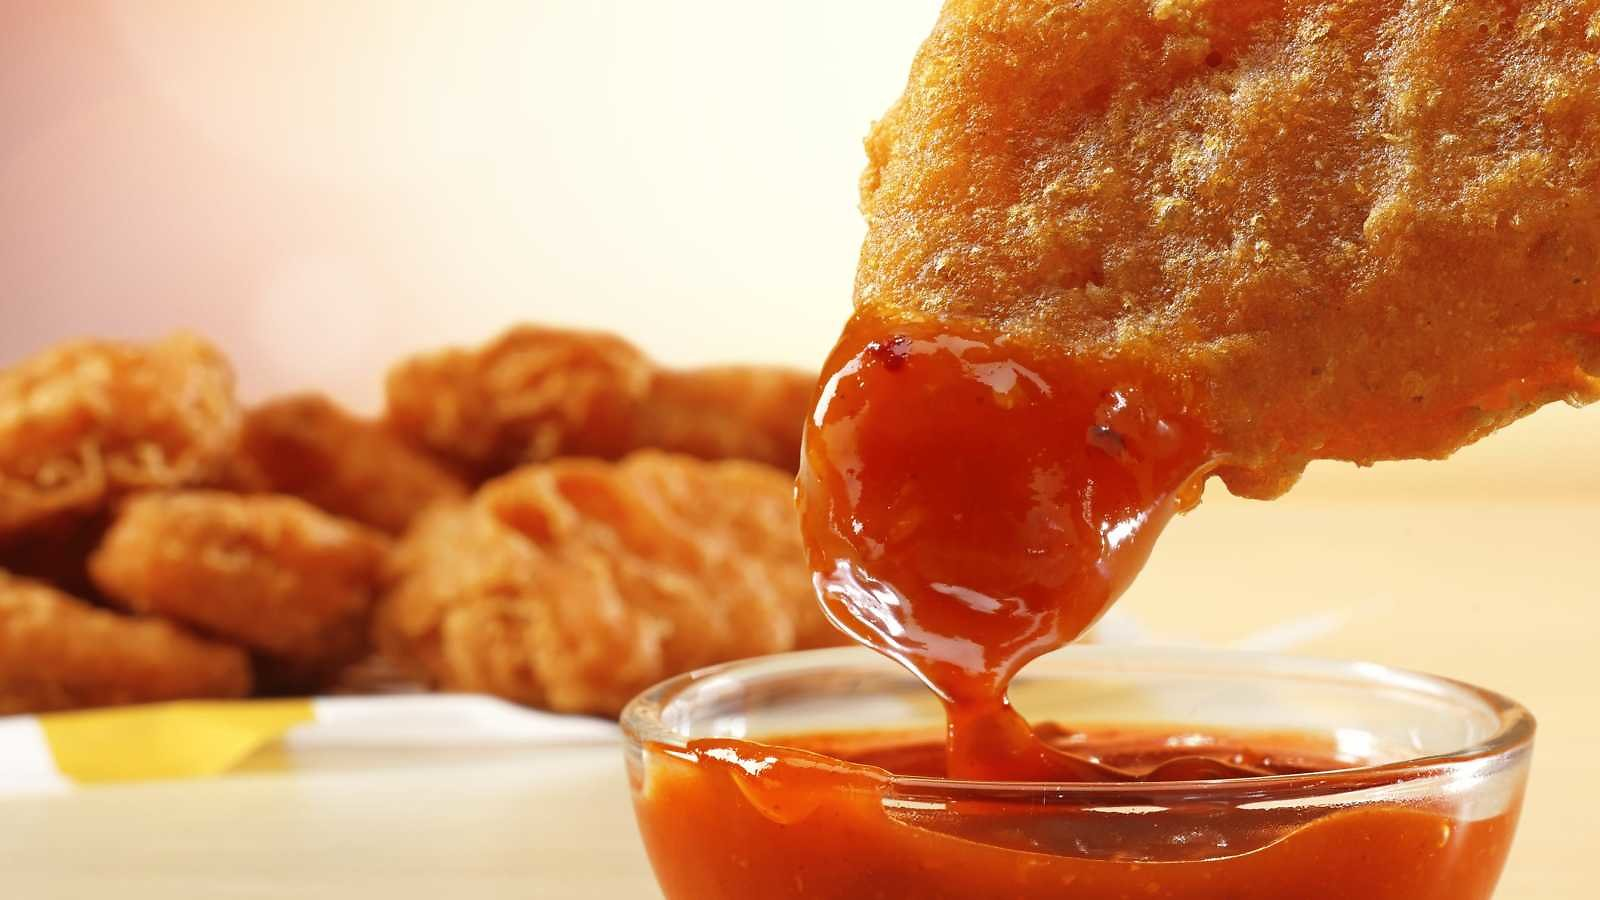 McDonald's Bringing Back Spicy Chicken McNuggets, Mighty Hot Sauce for a Limited Time Starting Feb. 1